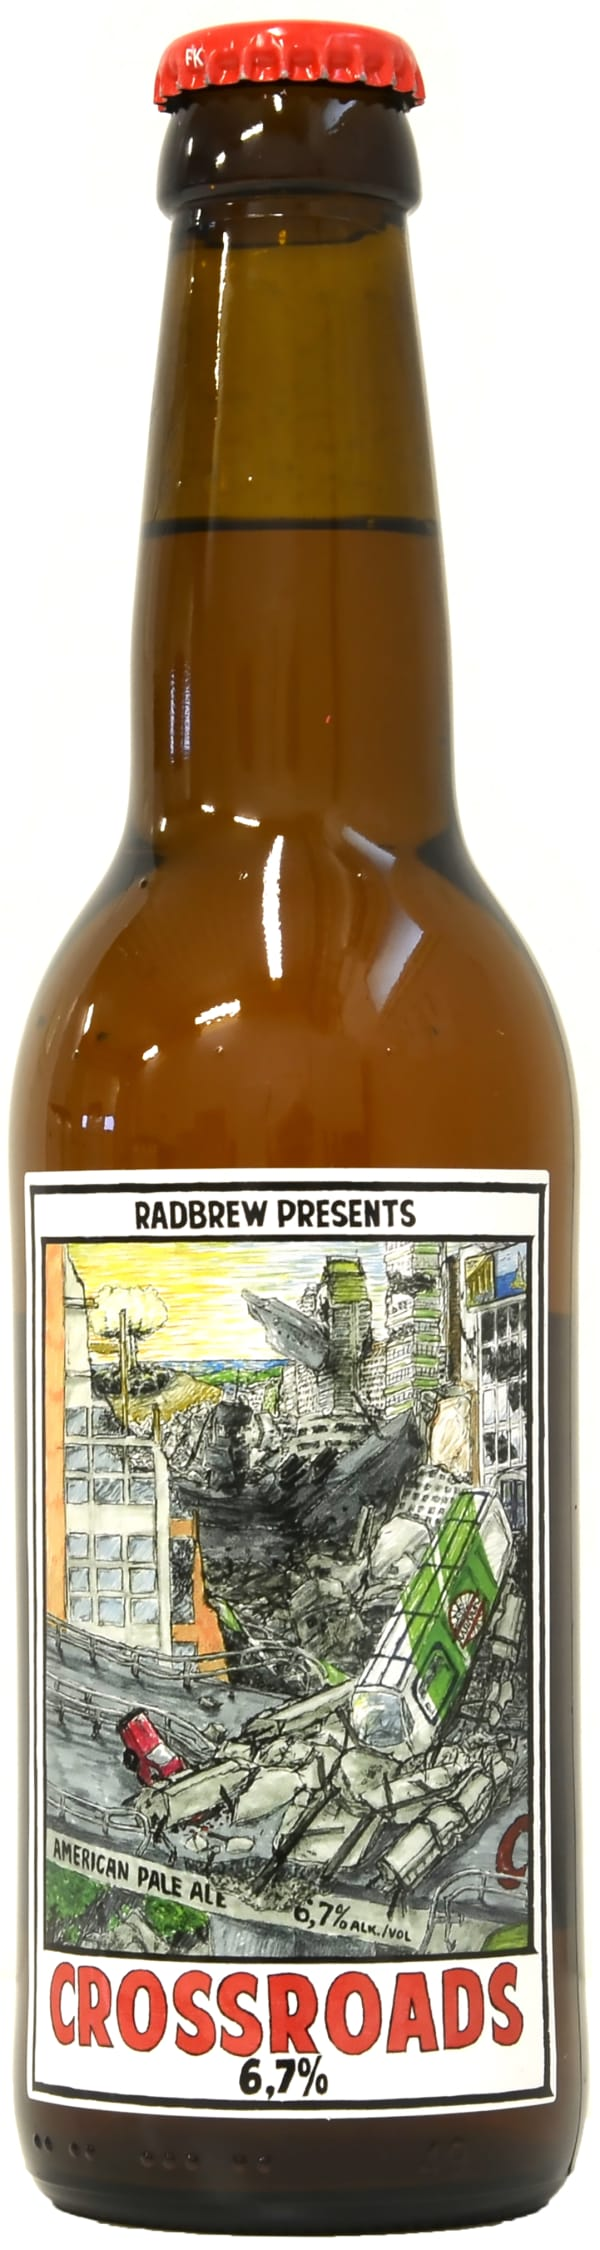 Radbrew Crossroads